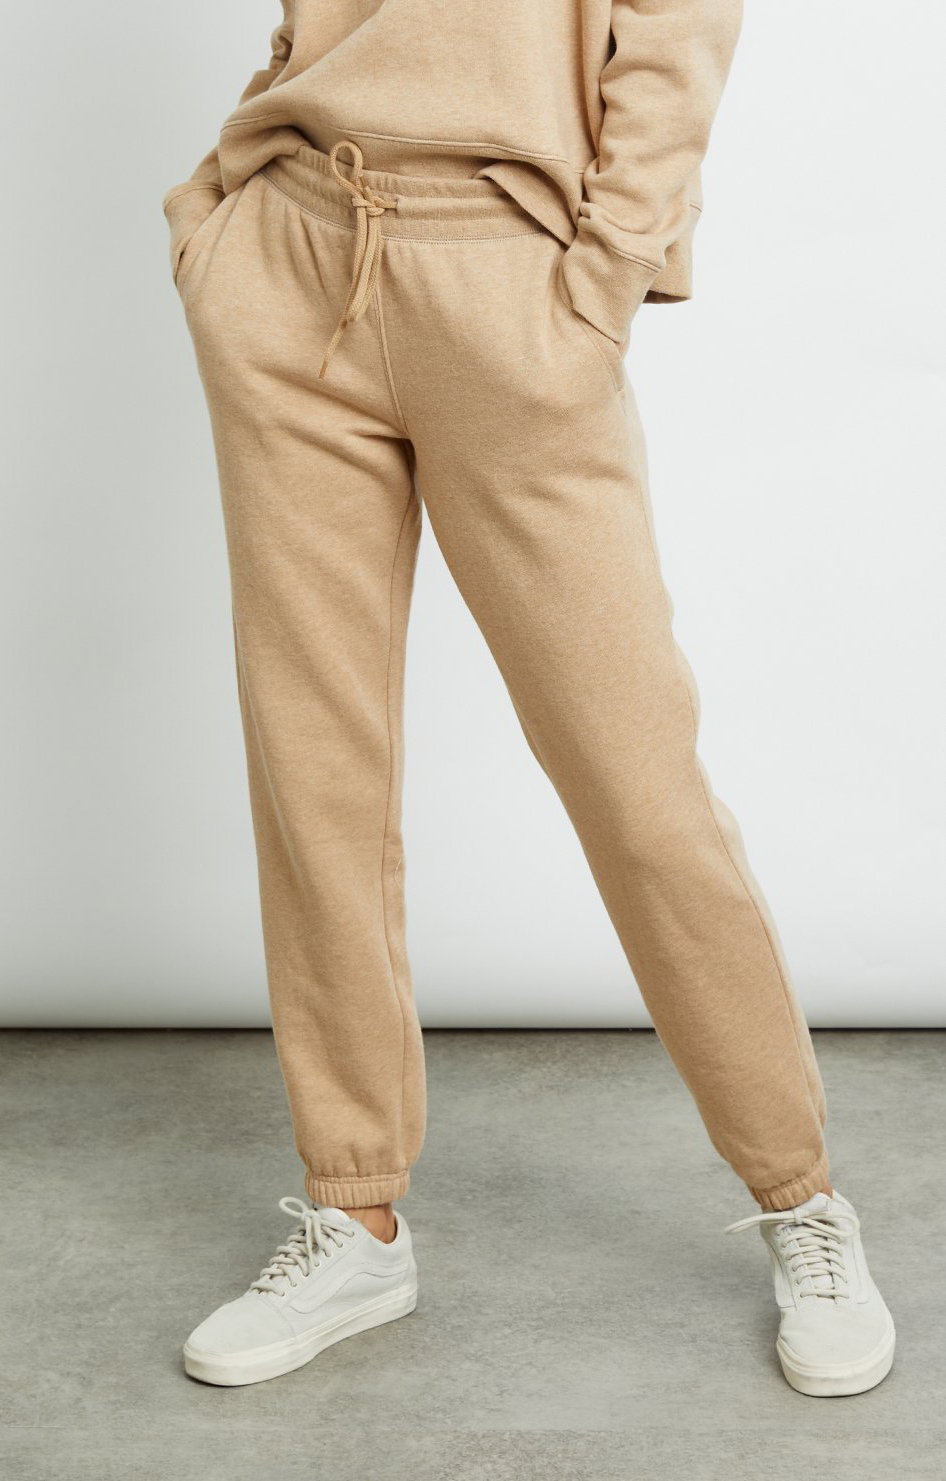 Kingston Pants - Heather Camel